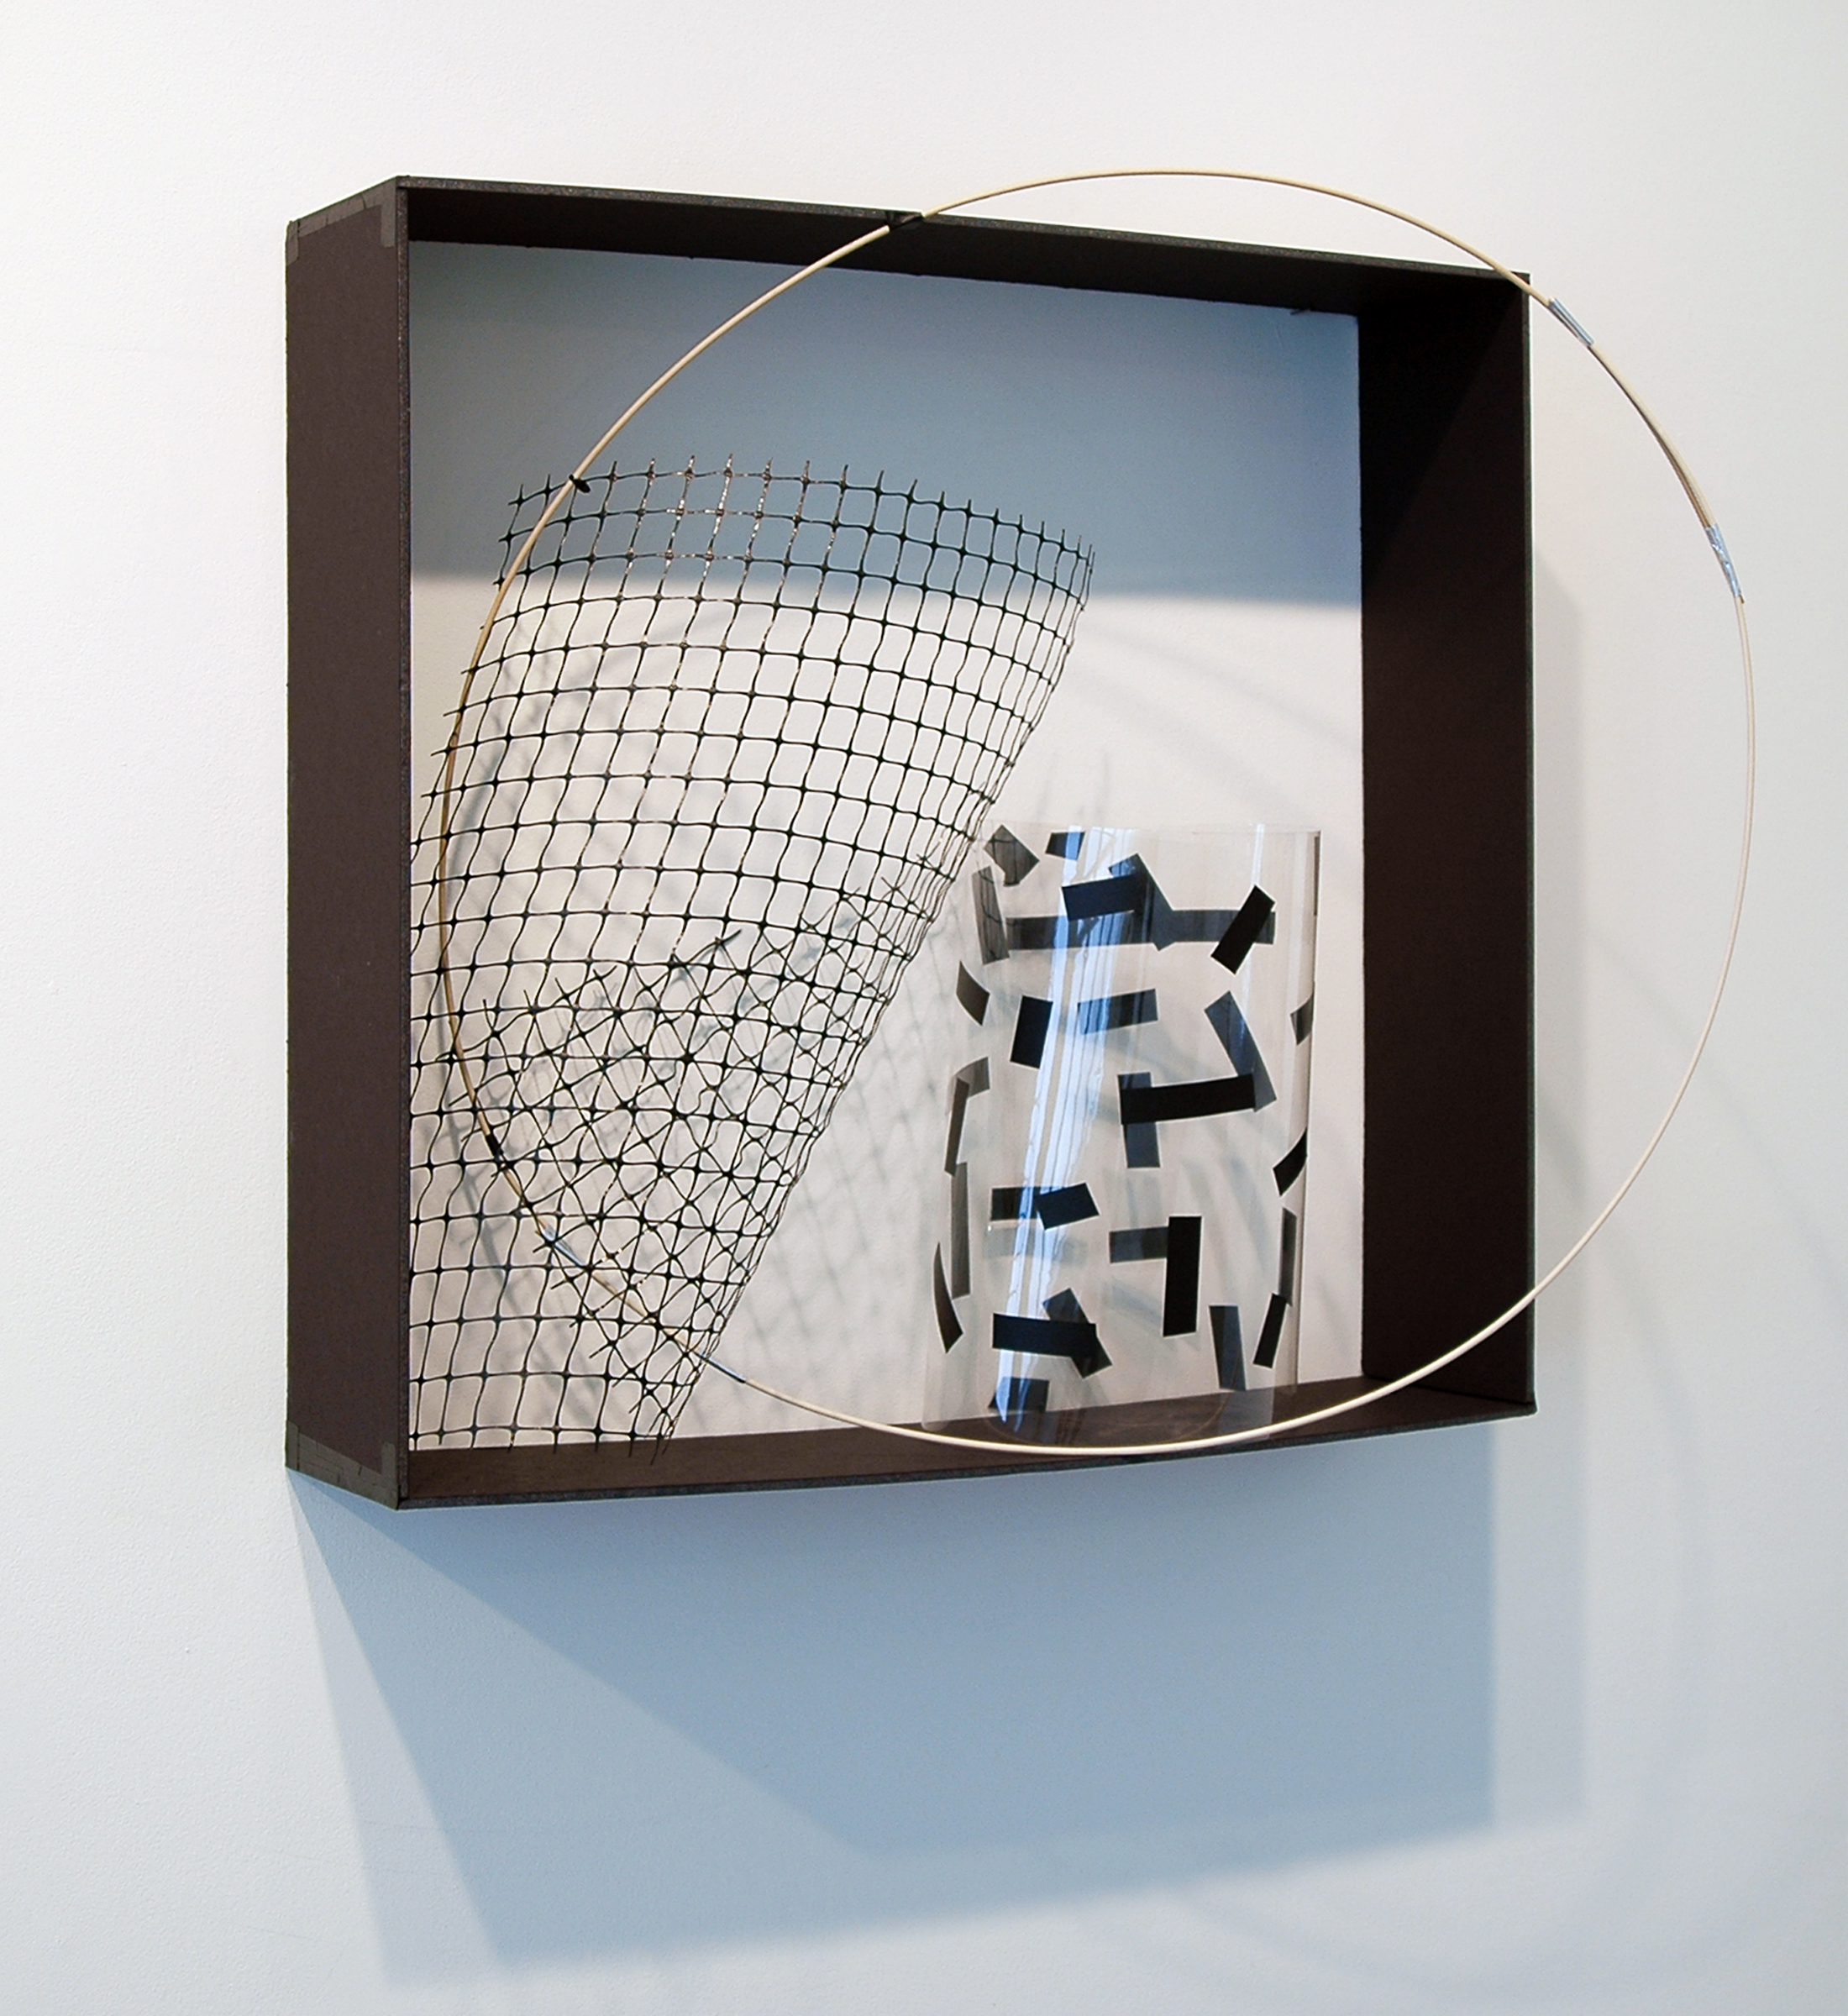 """ALICE CATTANEO   The piece in the box , 2013, foam board, plastic, tape, plastic netting, balsa wood, cable ties, 25"""" x 24.75"""" x 12"""""""